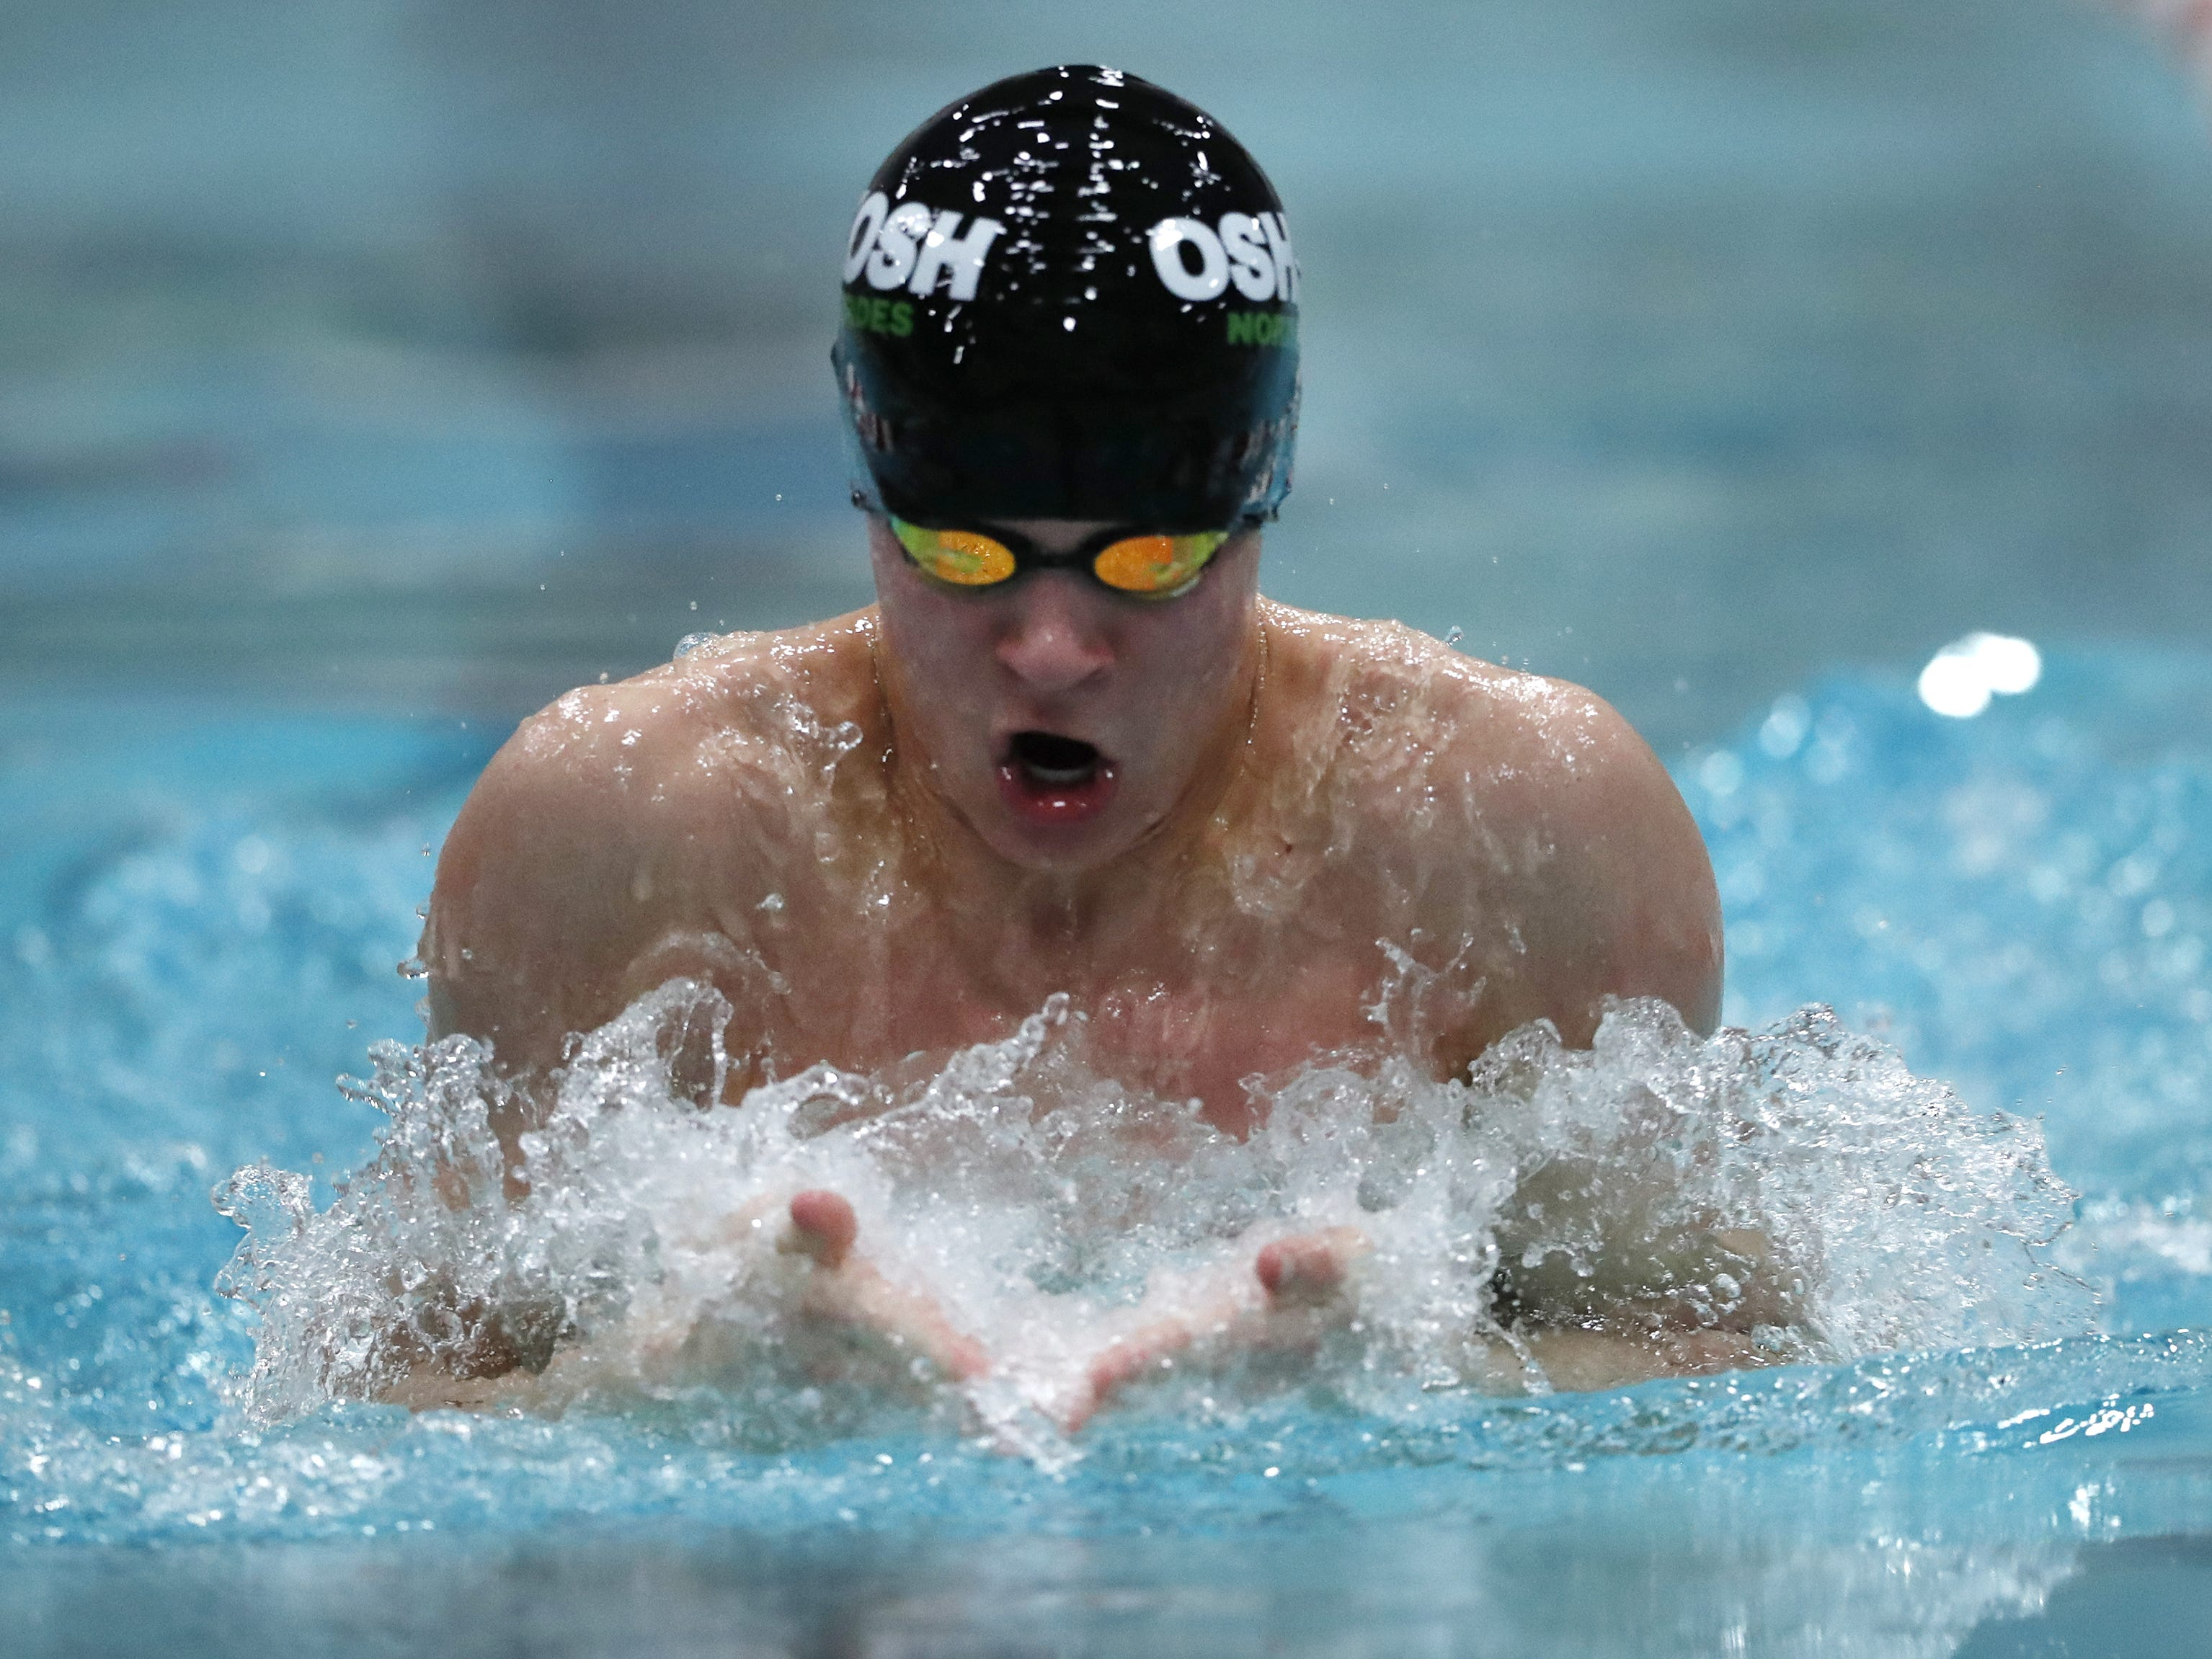 Oshkosh North/Lourdes AcademyÕs  Eddie Hansen races in the 100 yard breaststroke during the Division 1 2019 State Boys Swimming and Diving Championships Saturday, Feb. 16, 2019, at the UW Natatorium in Madison, Wis. Danny Damiani/USA TODAY NETWORK-Wisconsin